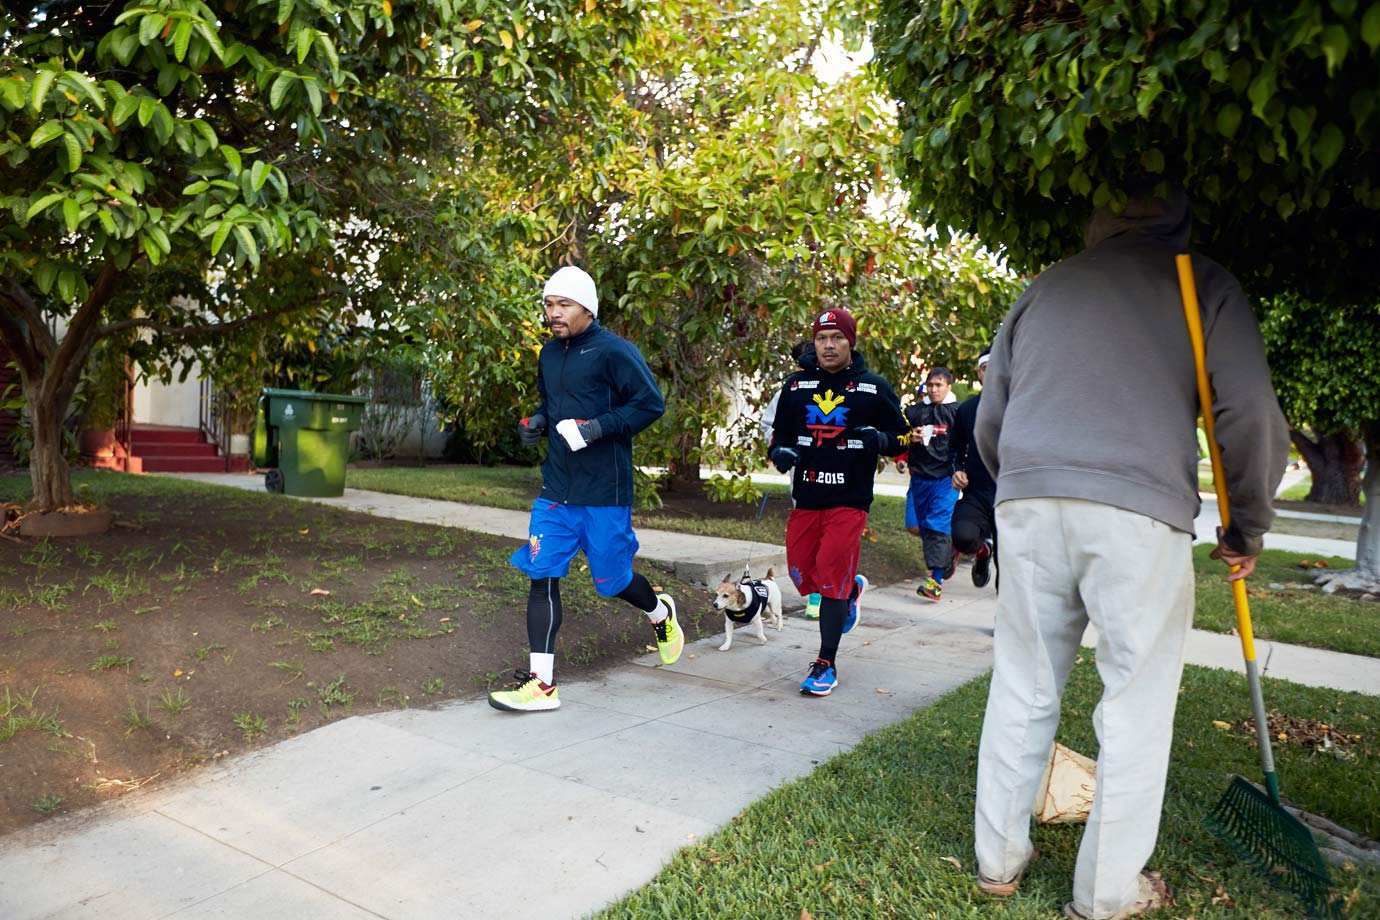 To help stave off the tedium of training camp, the ever-sociable Manny Pacquiao takes his workouts to the streets—well, at least to the sidewalks, playgrounds and stadiums—of Los Angeles.